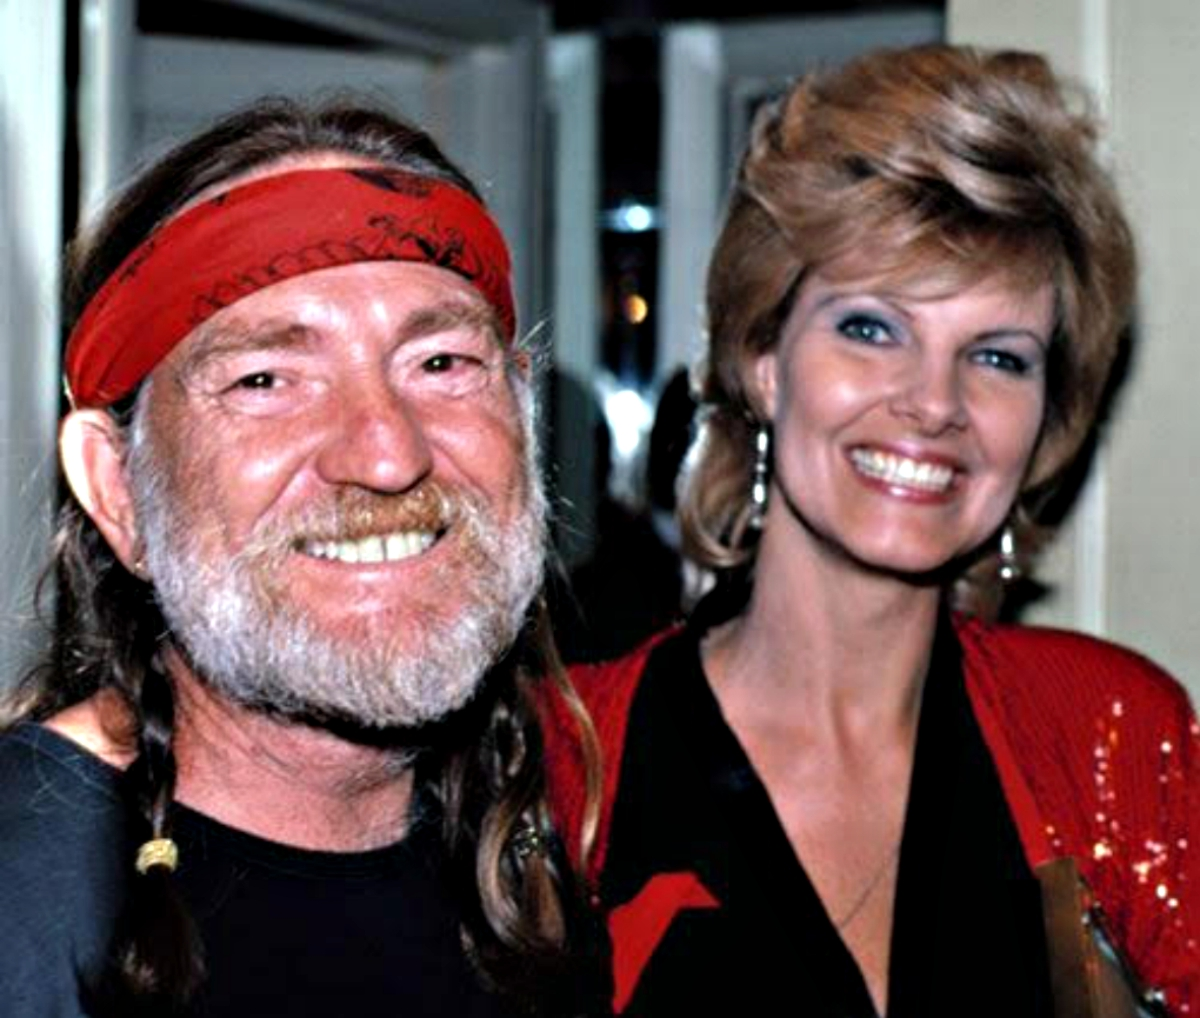 willie and wife number 3 connie